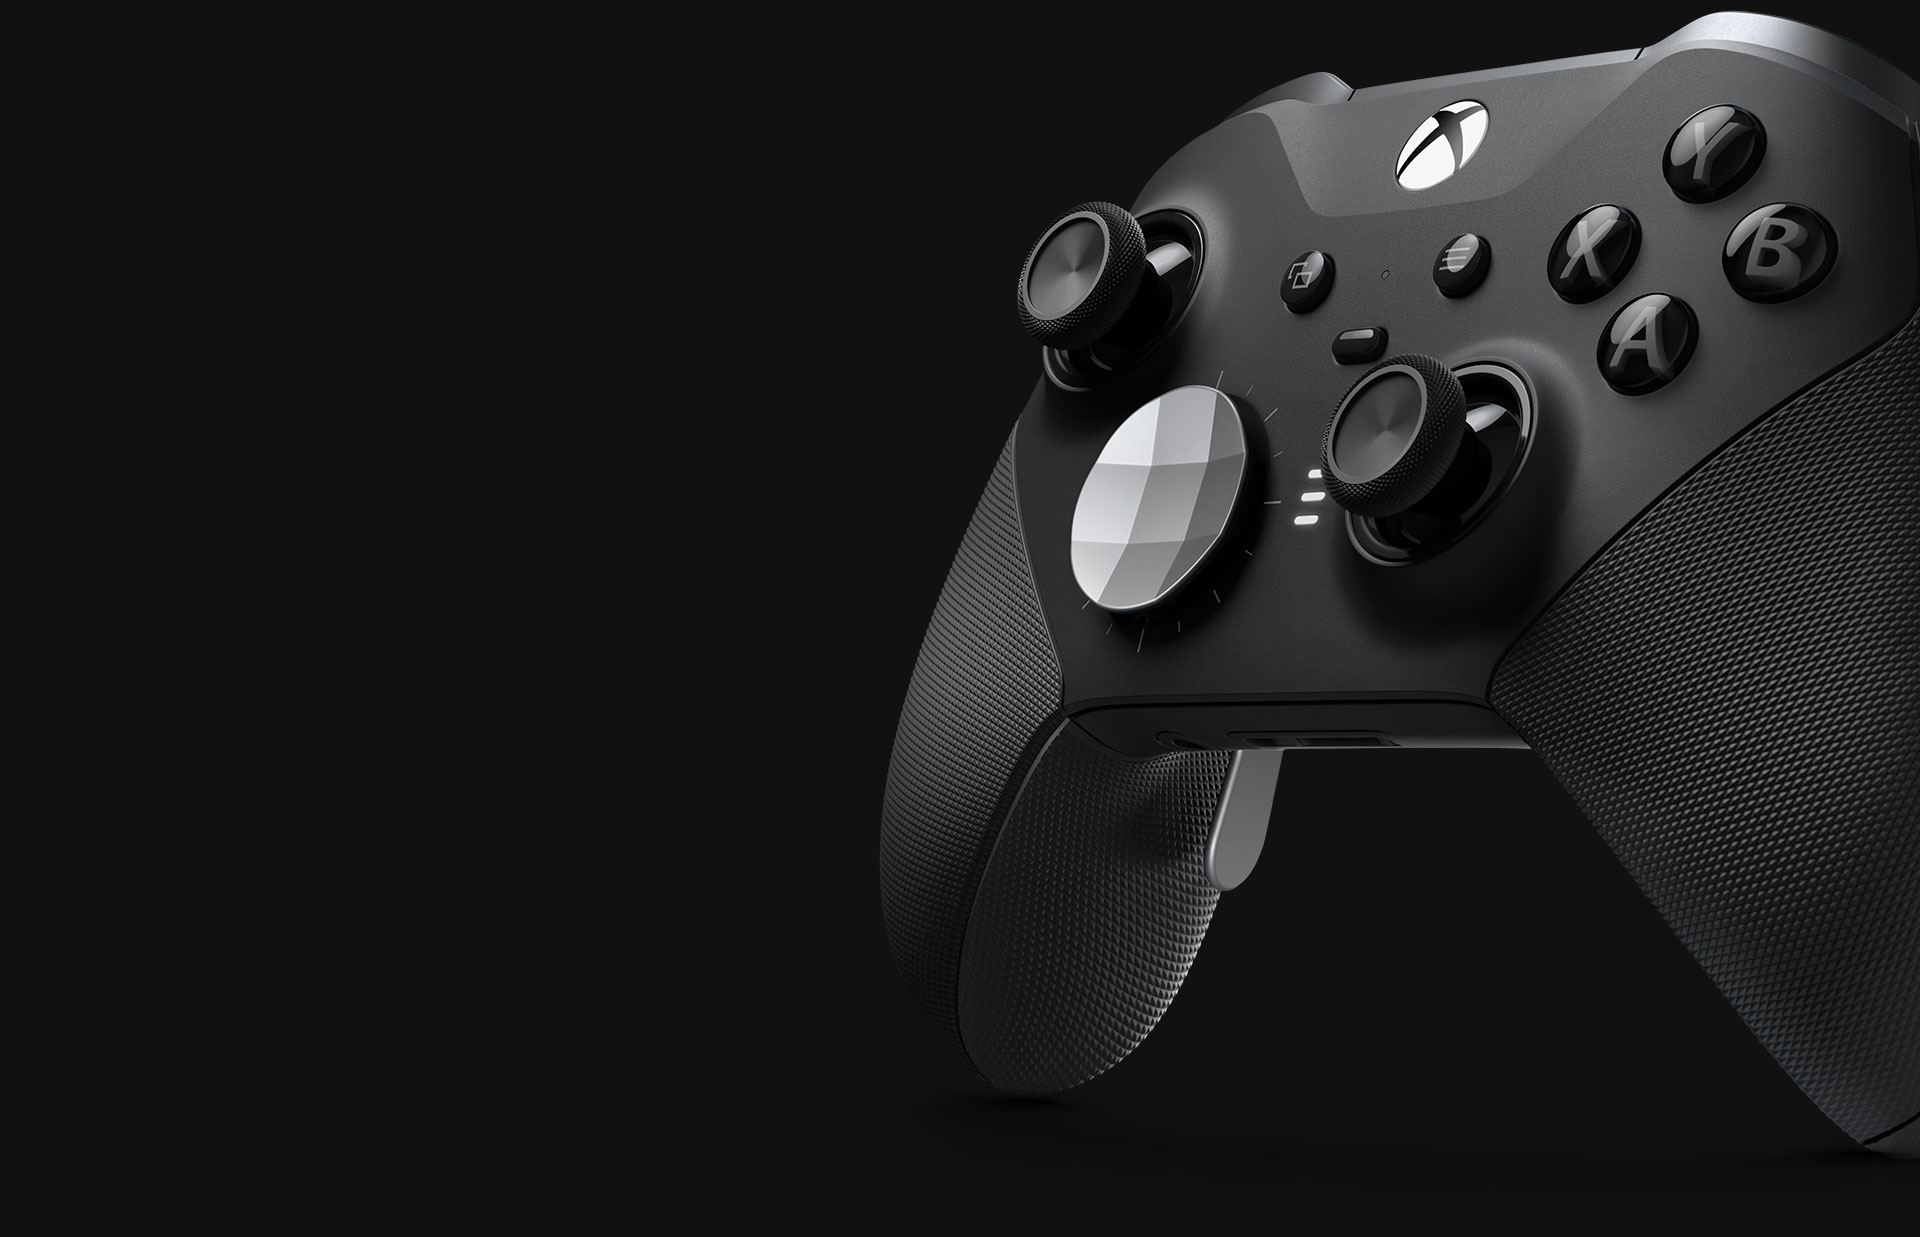 Close up angled view of the Xbox Elite Wireless controller series 2